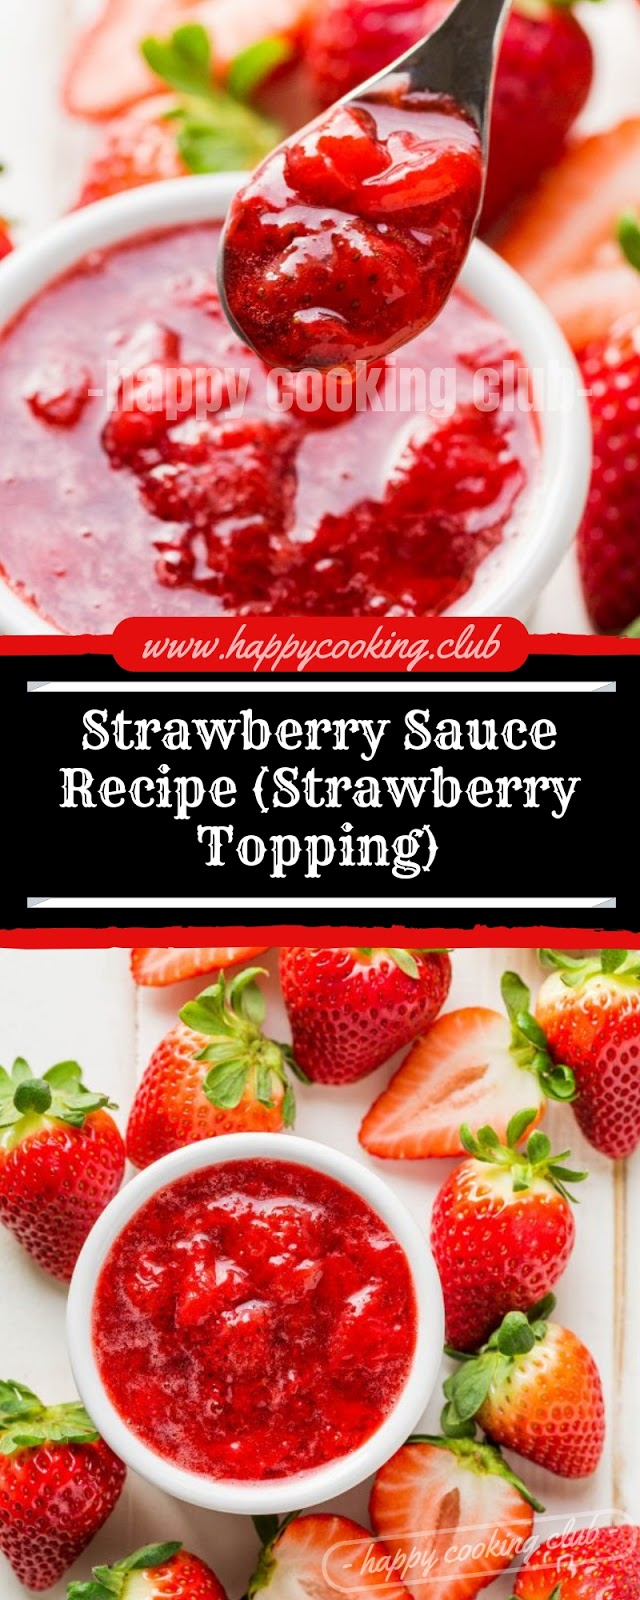 Strawberry Sauce Recipe (Strawberry Topping)